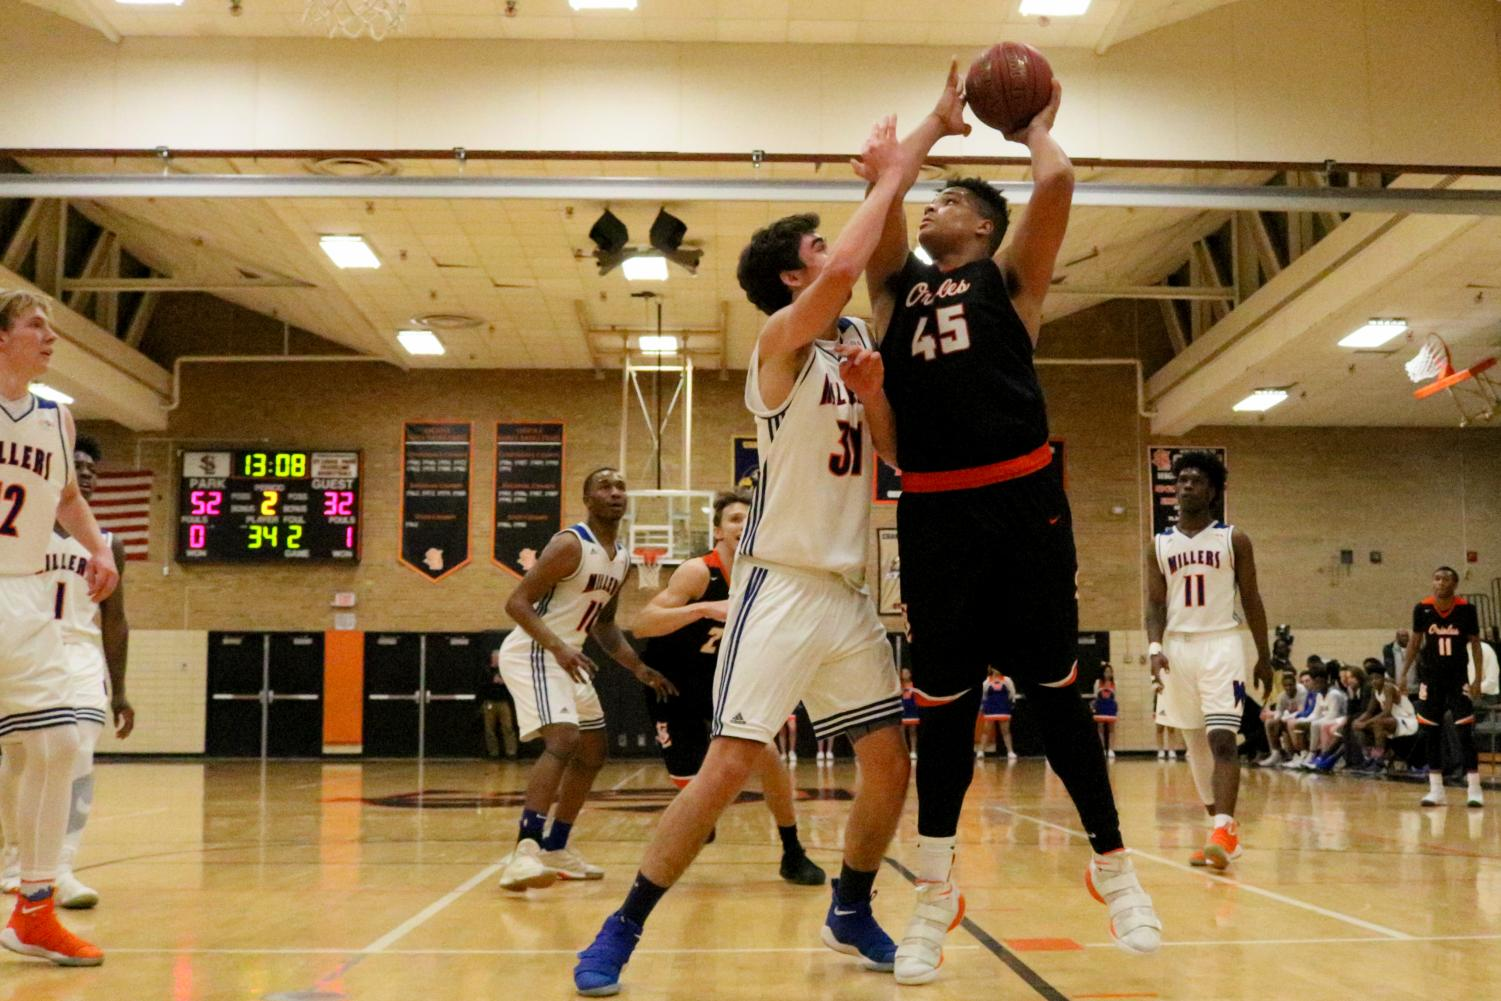 Junior Anthony Rayson posts up against Washburn's Gavin Yares during the second half of Park's first section game Mar. 6. Park defeated Washburn 85-70 and will play at 7:00 p.m. March 9 at Osseo High School against Wayzata for a spot in the section finals.